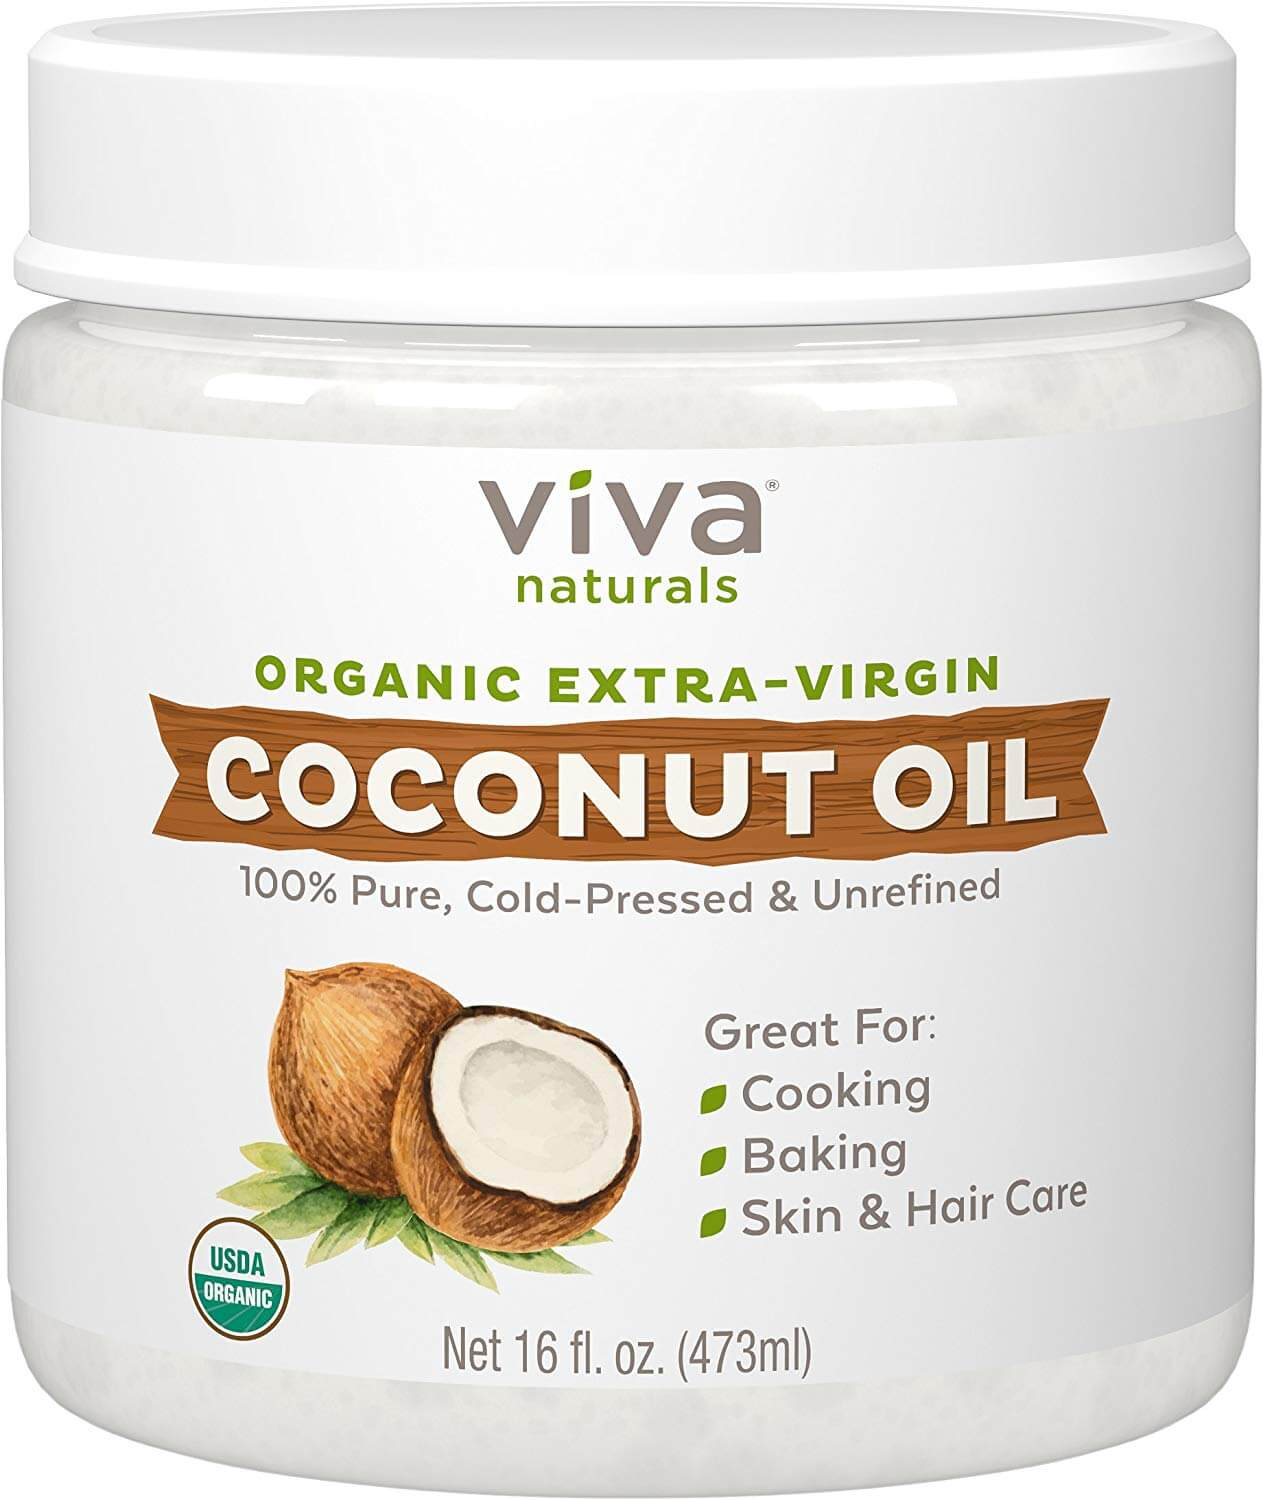 A bottle of organic extra-virgin coconut oil